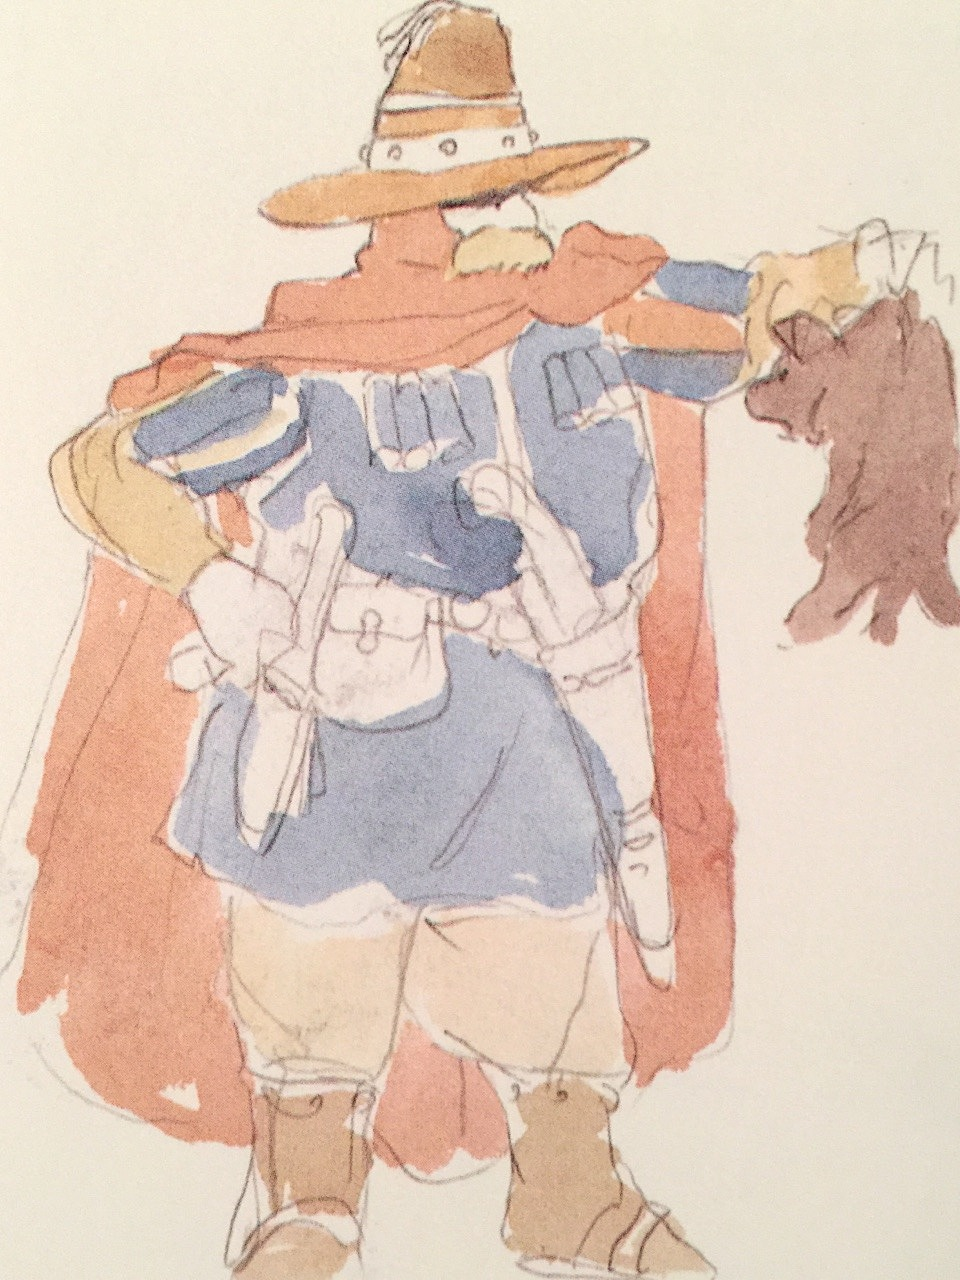 Lord-Yupa-The-Art-Of-Nausica-Of-The-Valley-Of-The-Wind-Watercolor-Impressions-Hayao-Miyazaki-nausicaa-of-the-valley-of-the-wind-40590574-960-1280.jpg